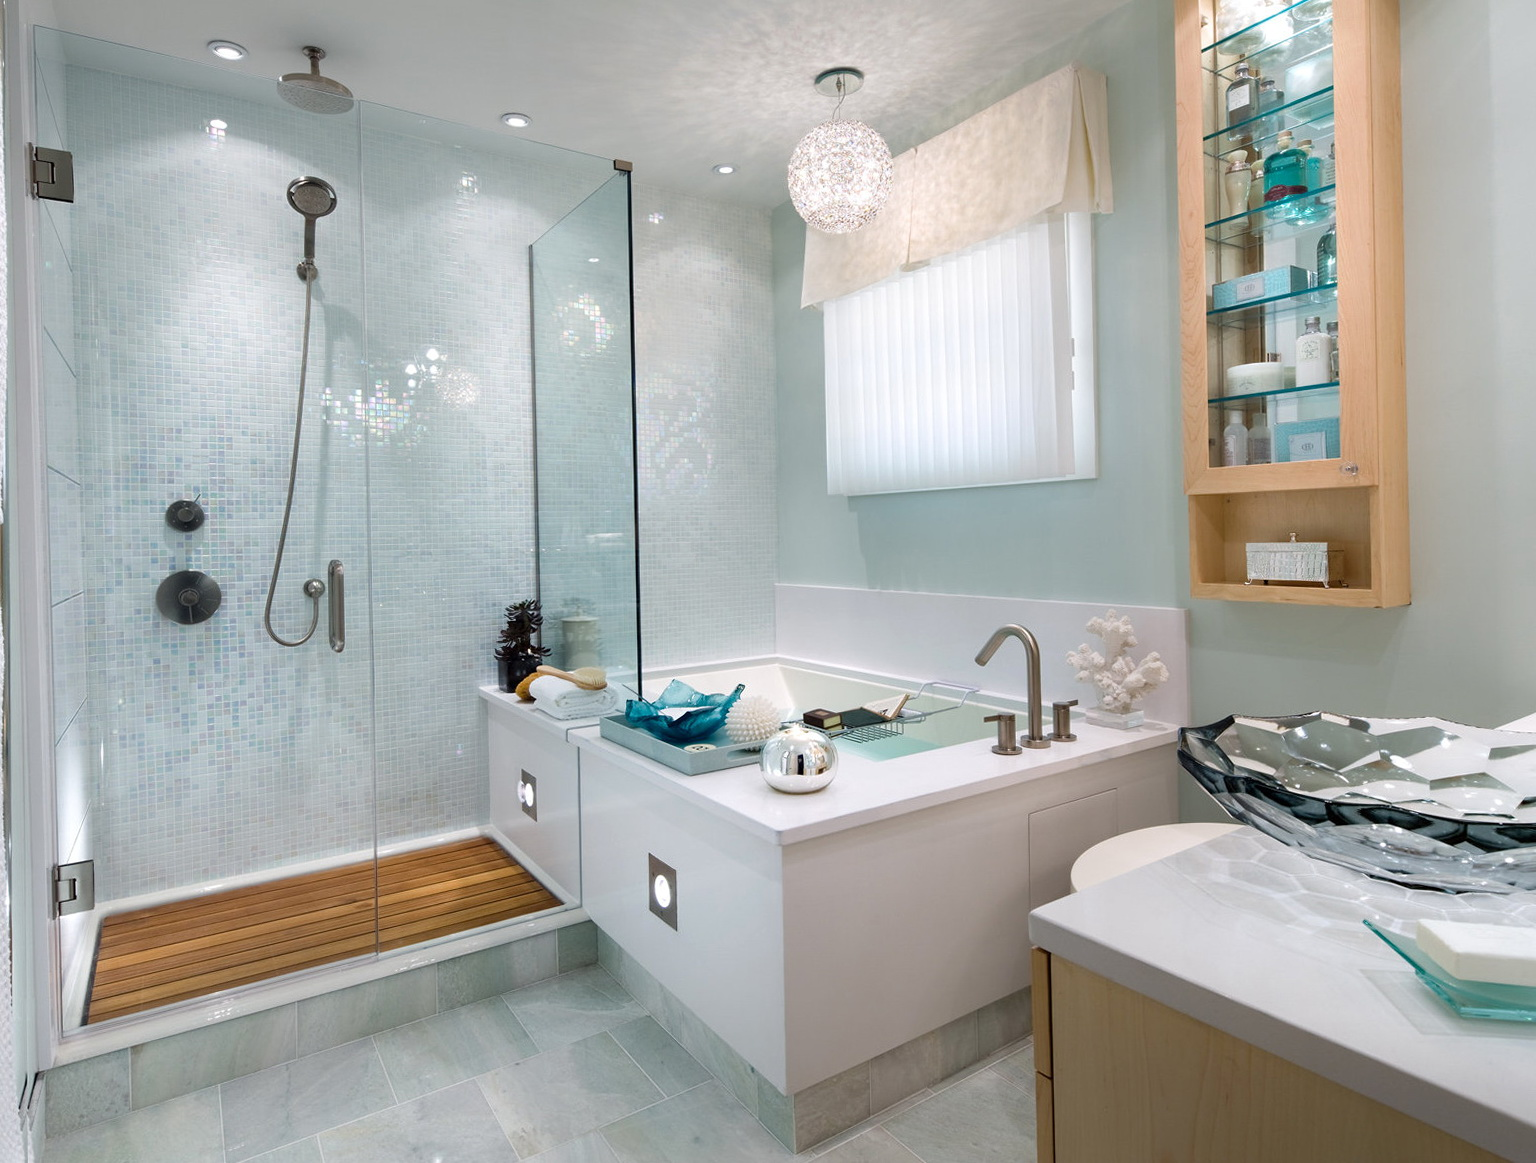 Diy Bathroom Remodel Checklist